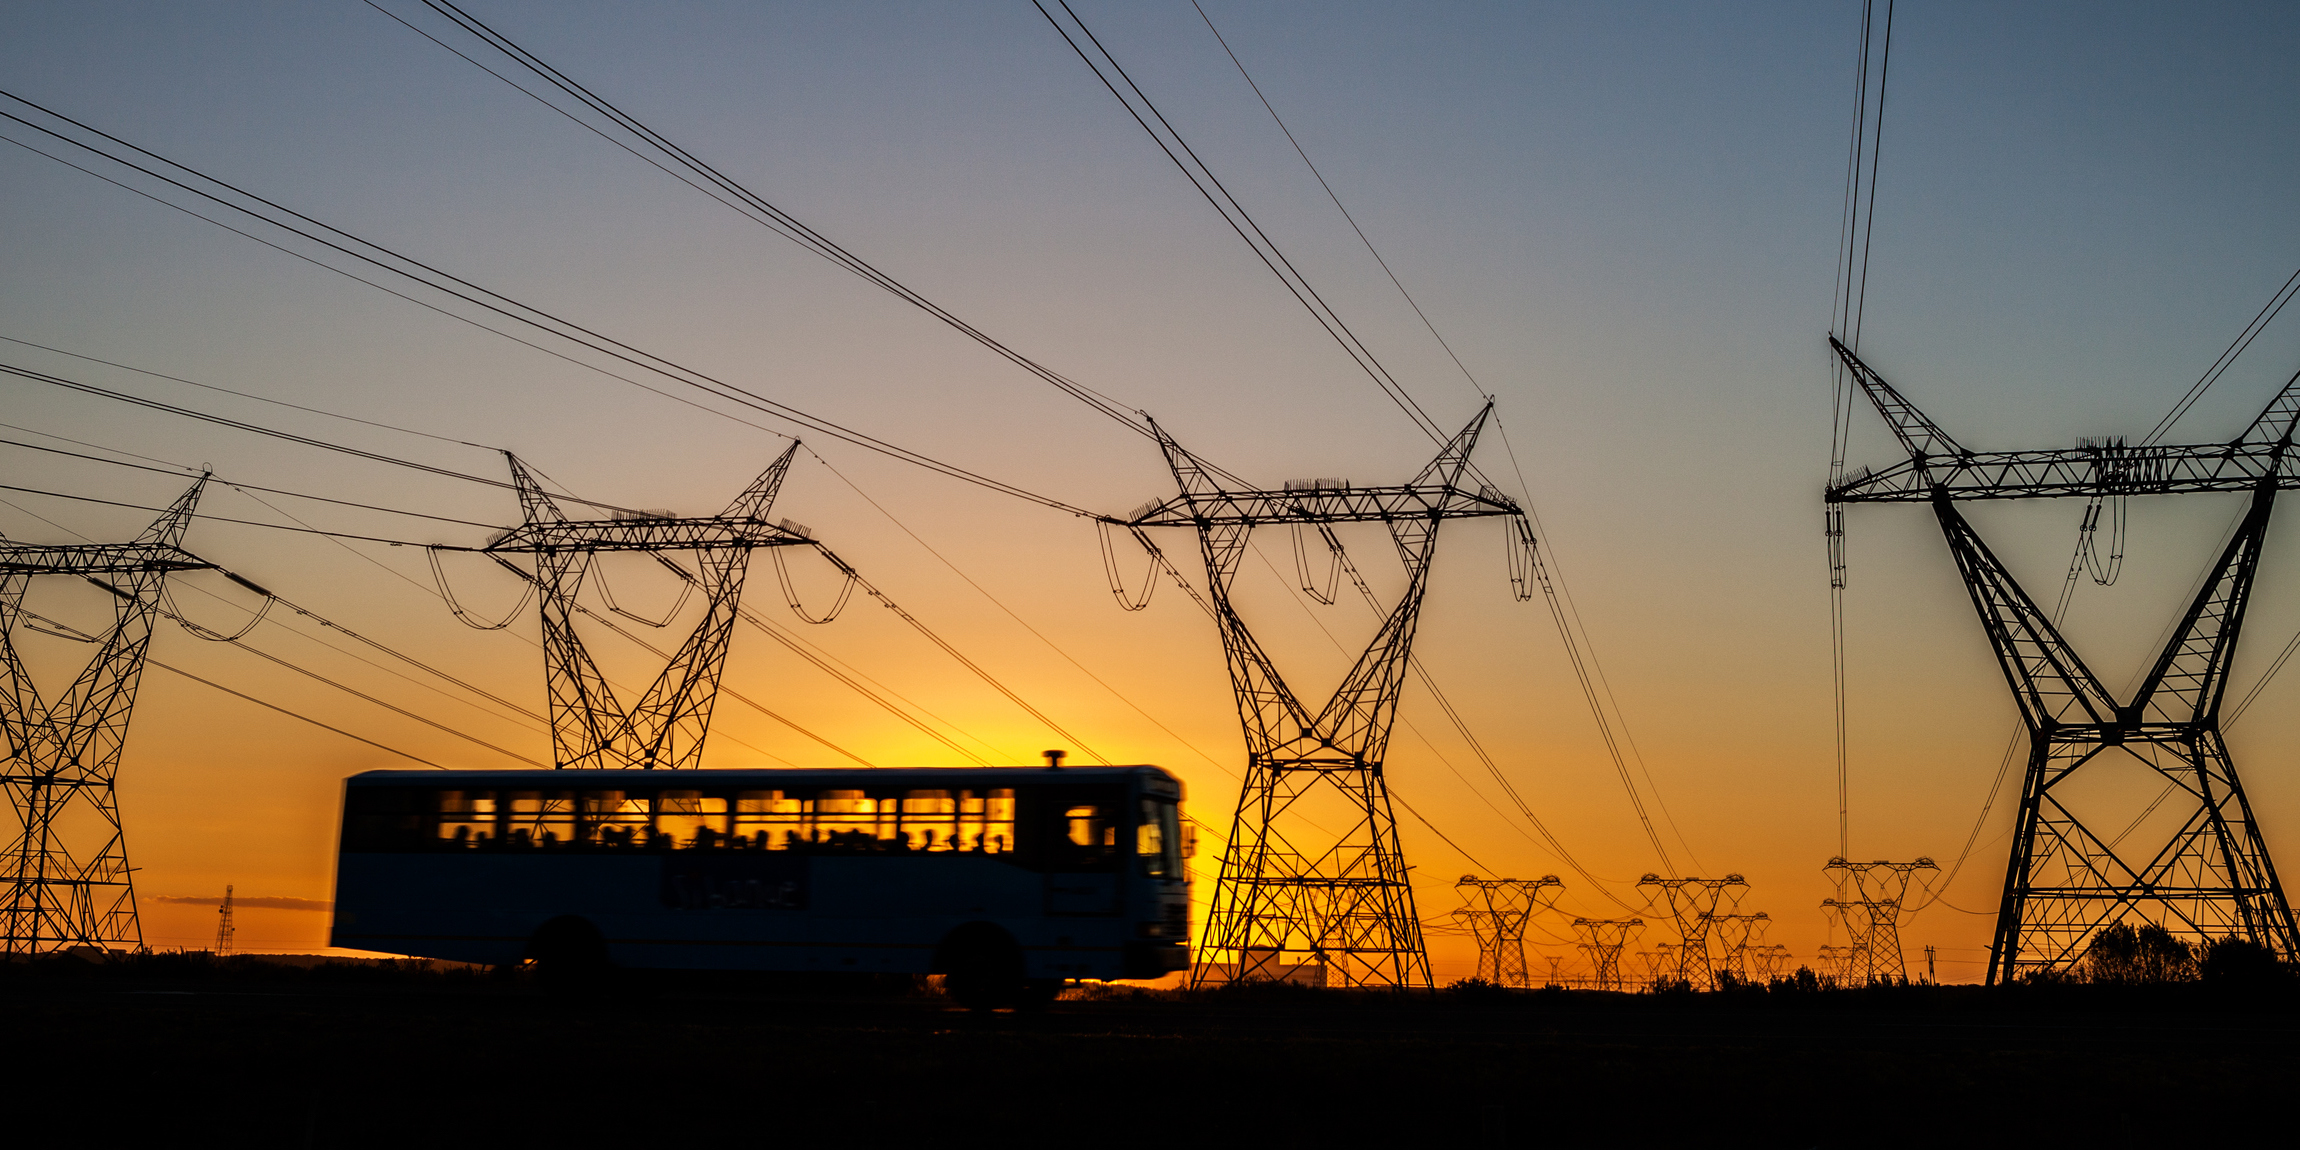 Bus with passengers driving by power lines in South Africa at sunset.